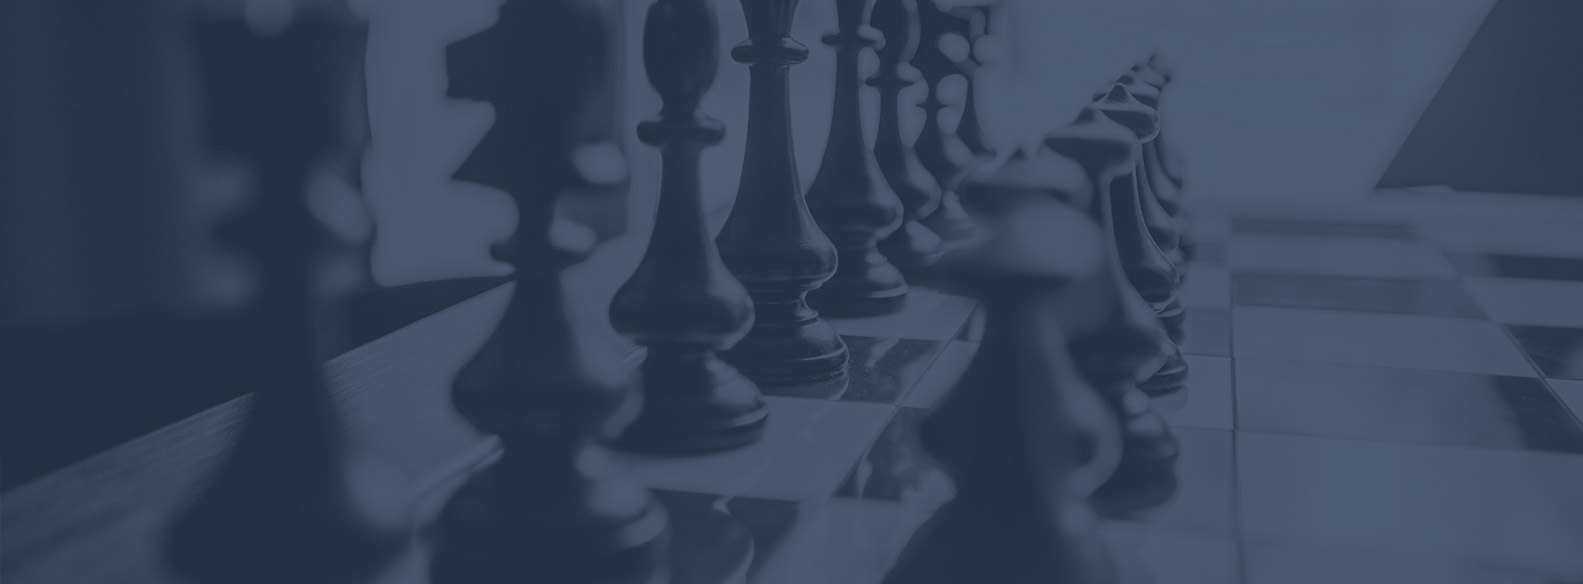 Chess pieces representing Diligentiam developing strategy through due diligence for banks